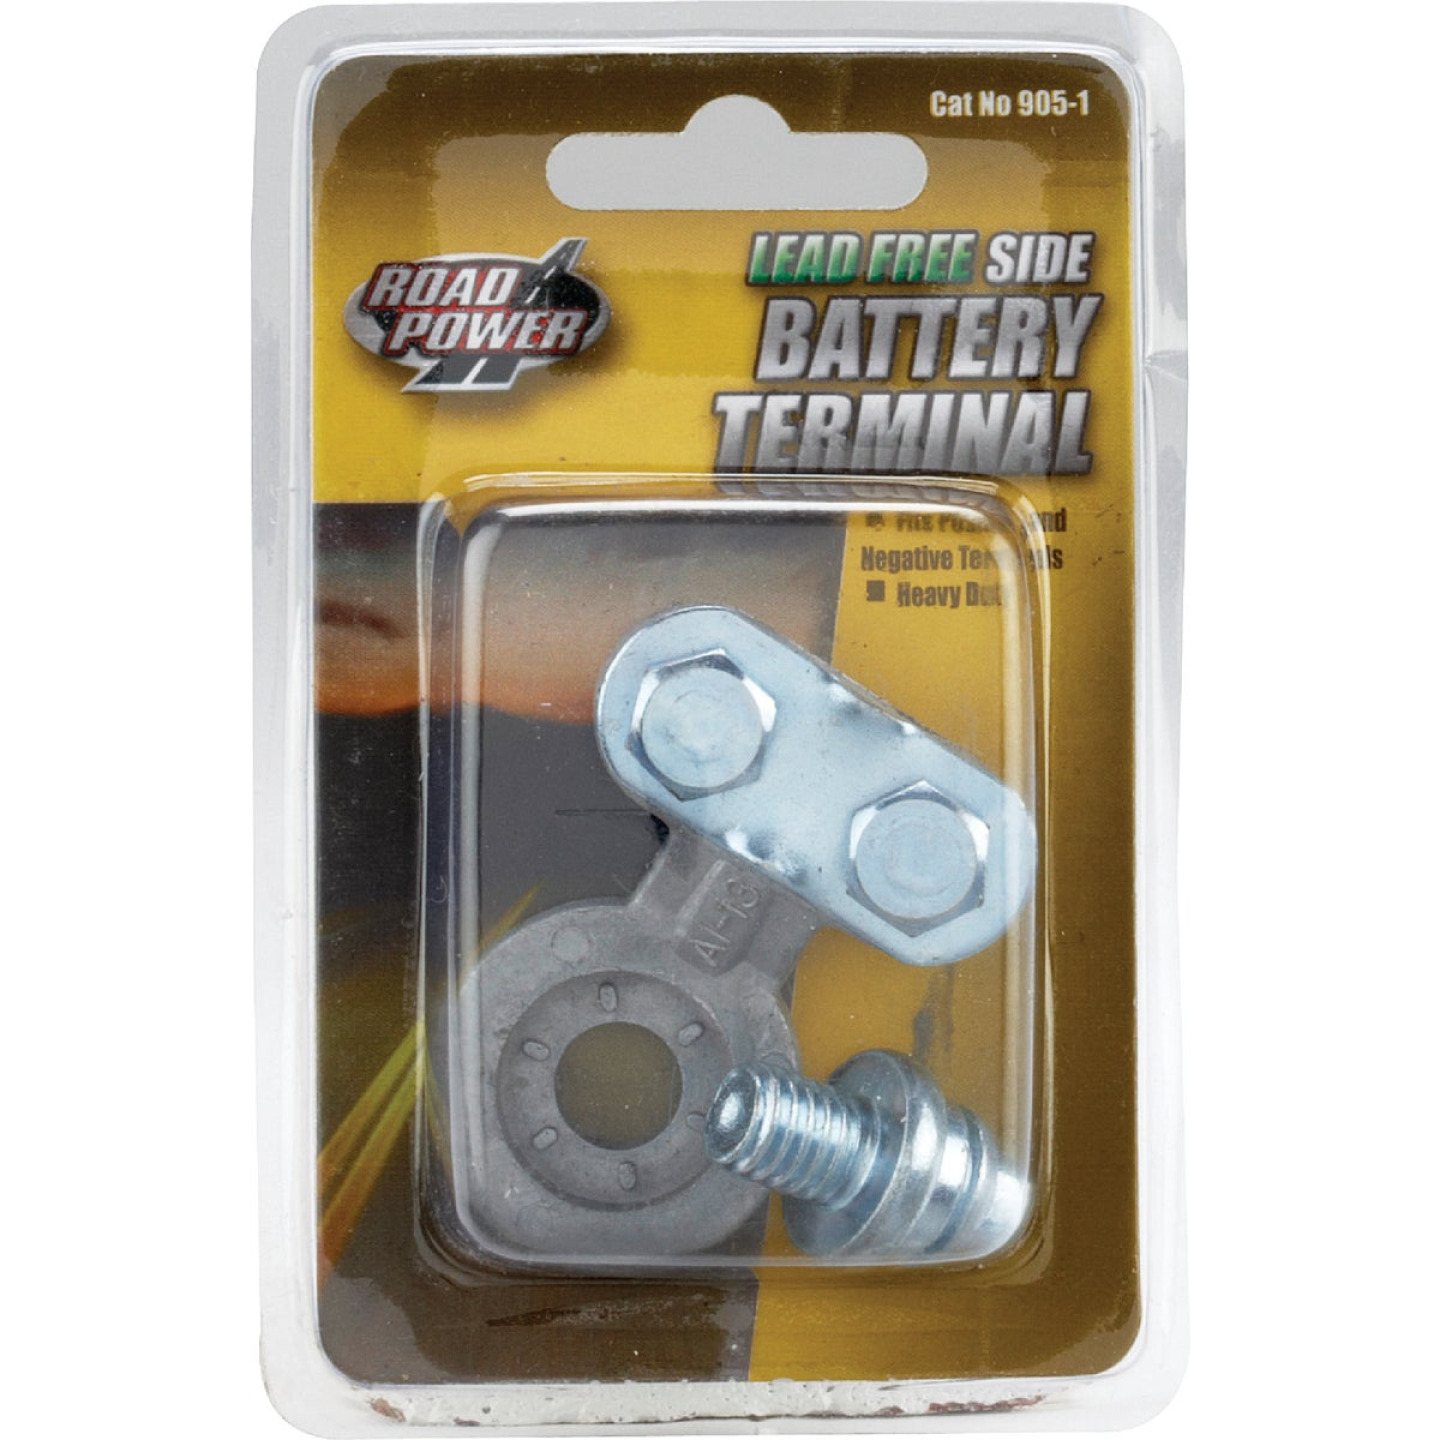 Road Power Lead-Free Side Post Battery Terminal Image 1